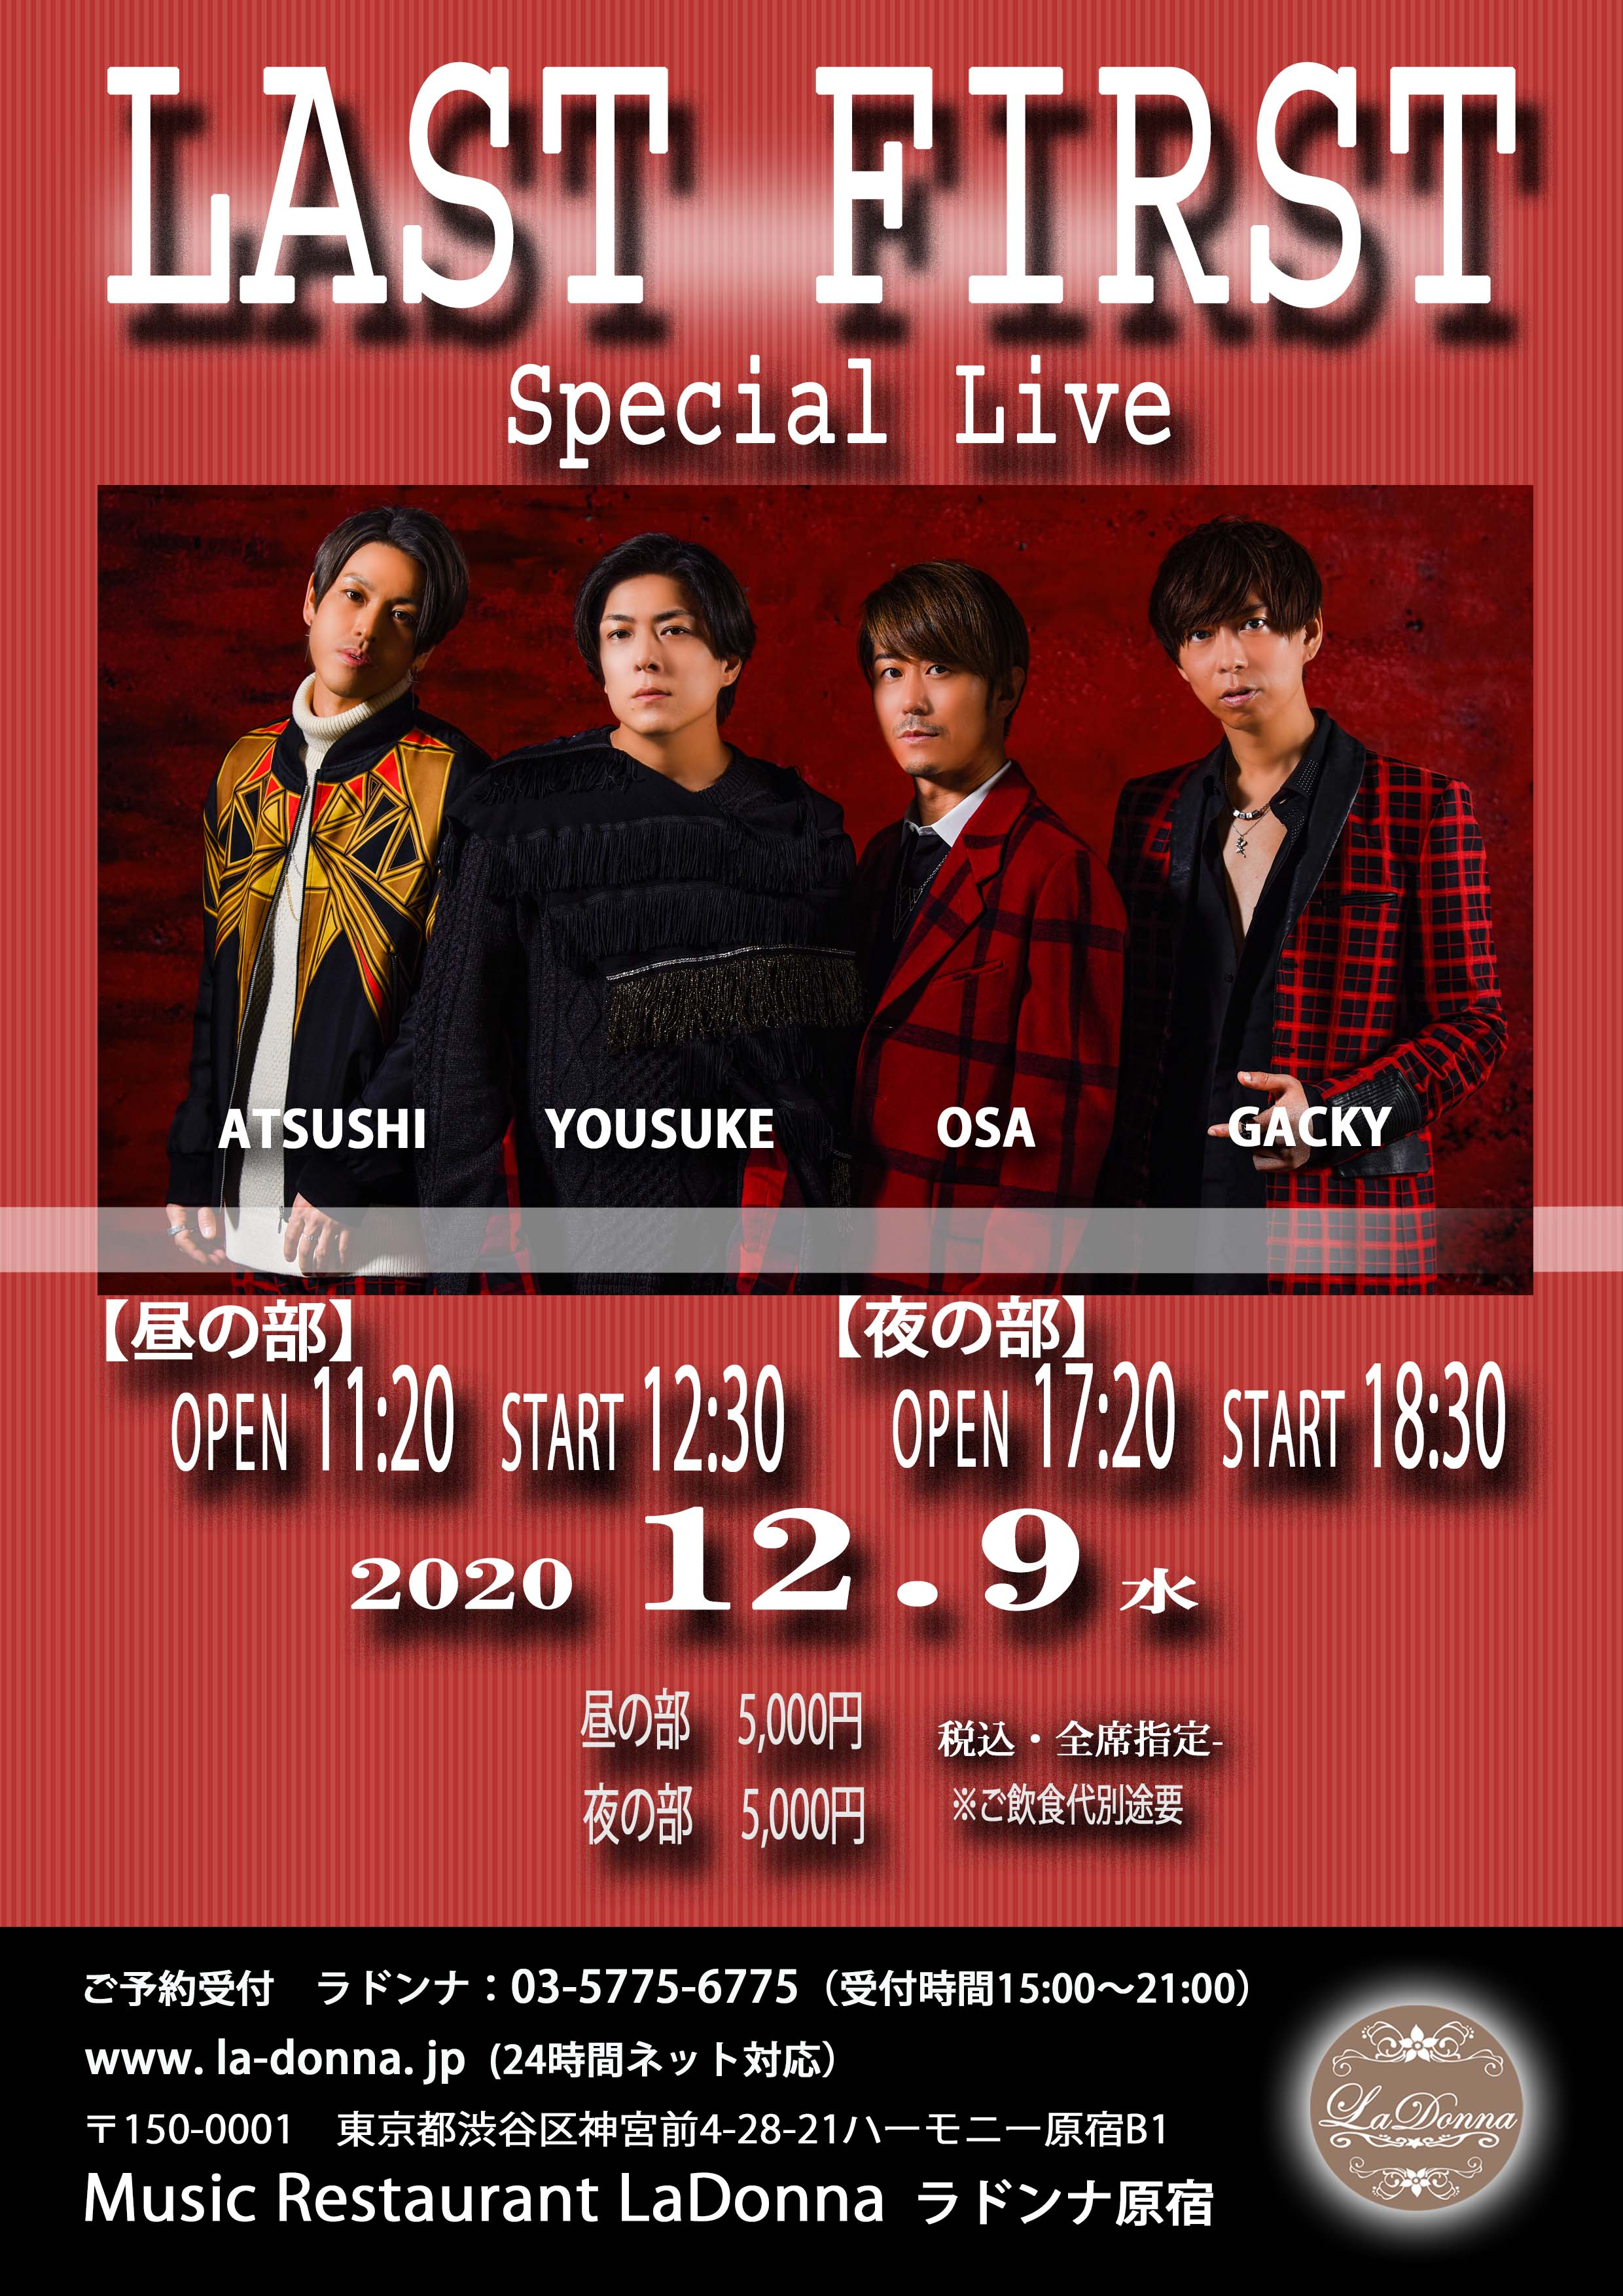 LAST FIRST Special Live